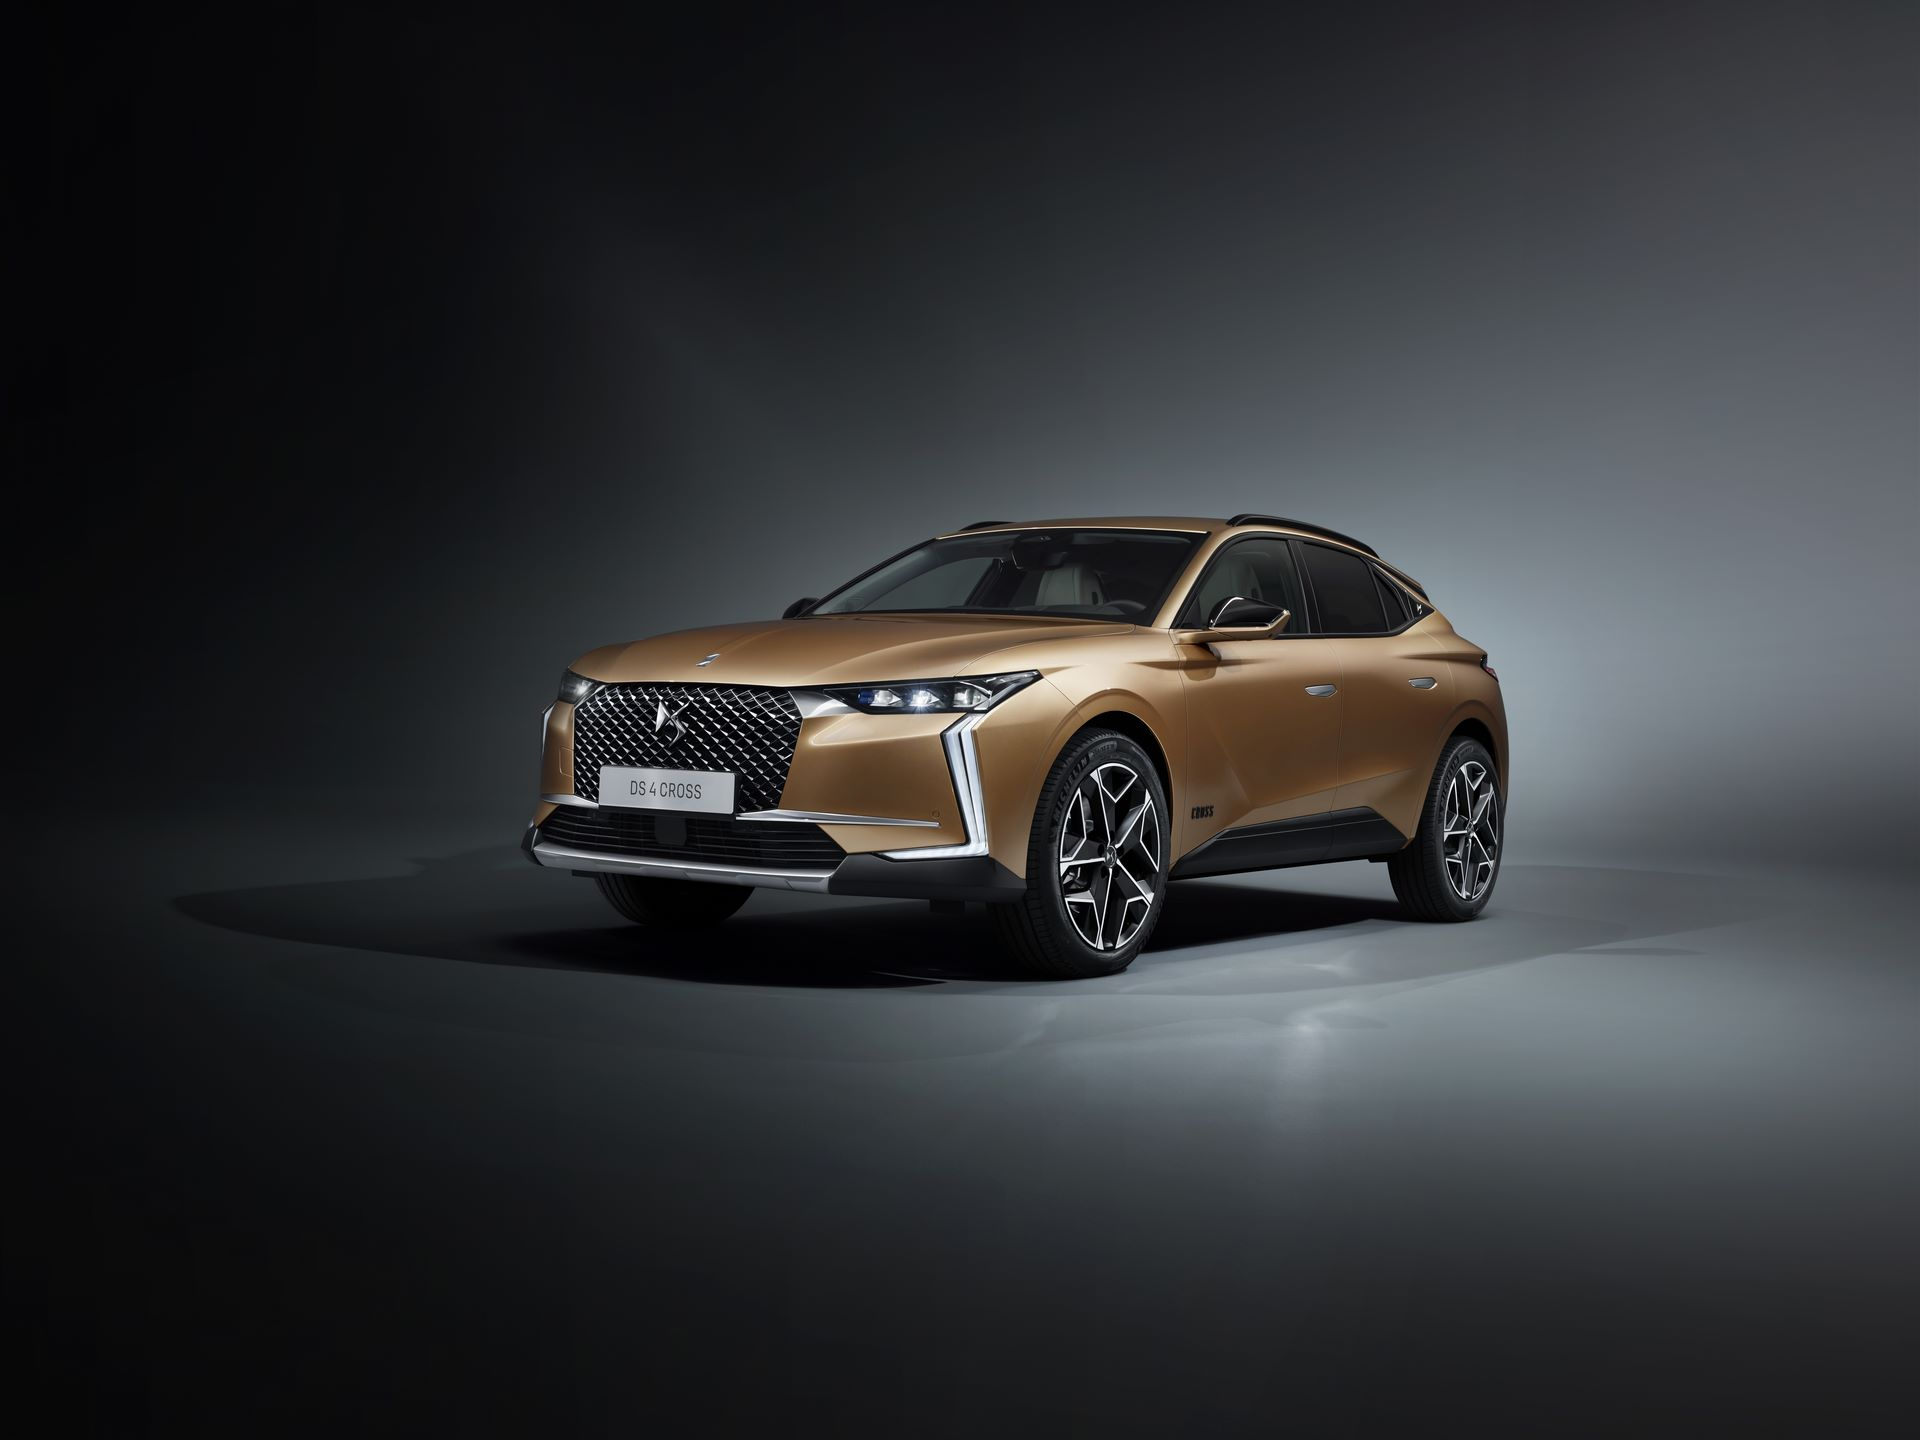 DS4-and-DS4-Cross-2021-41